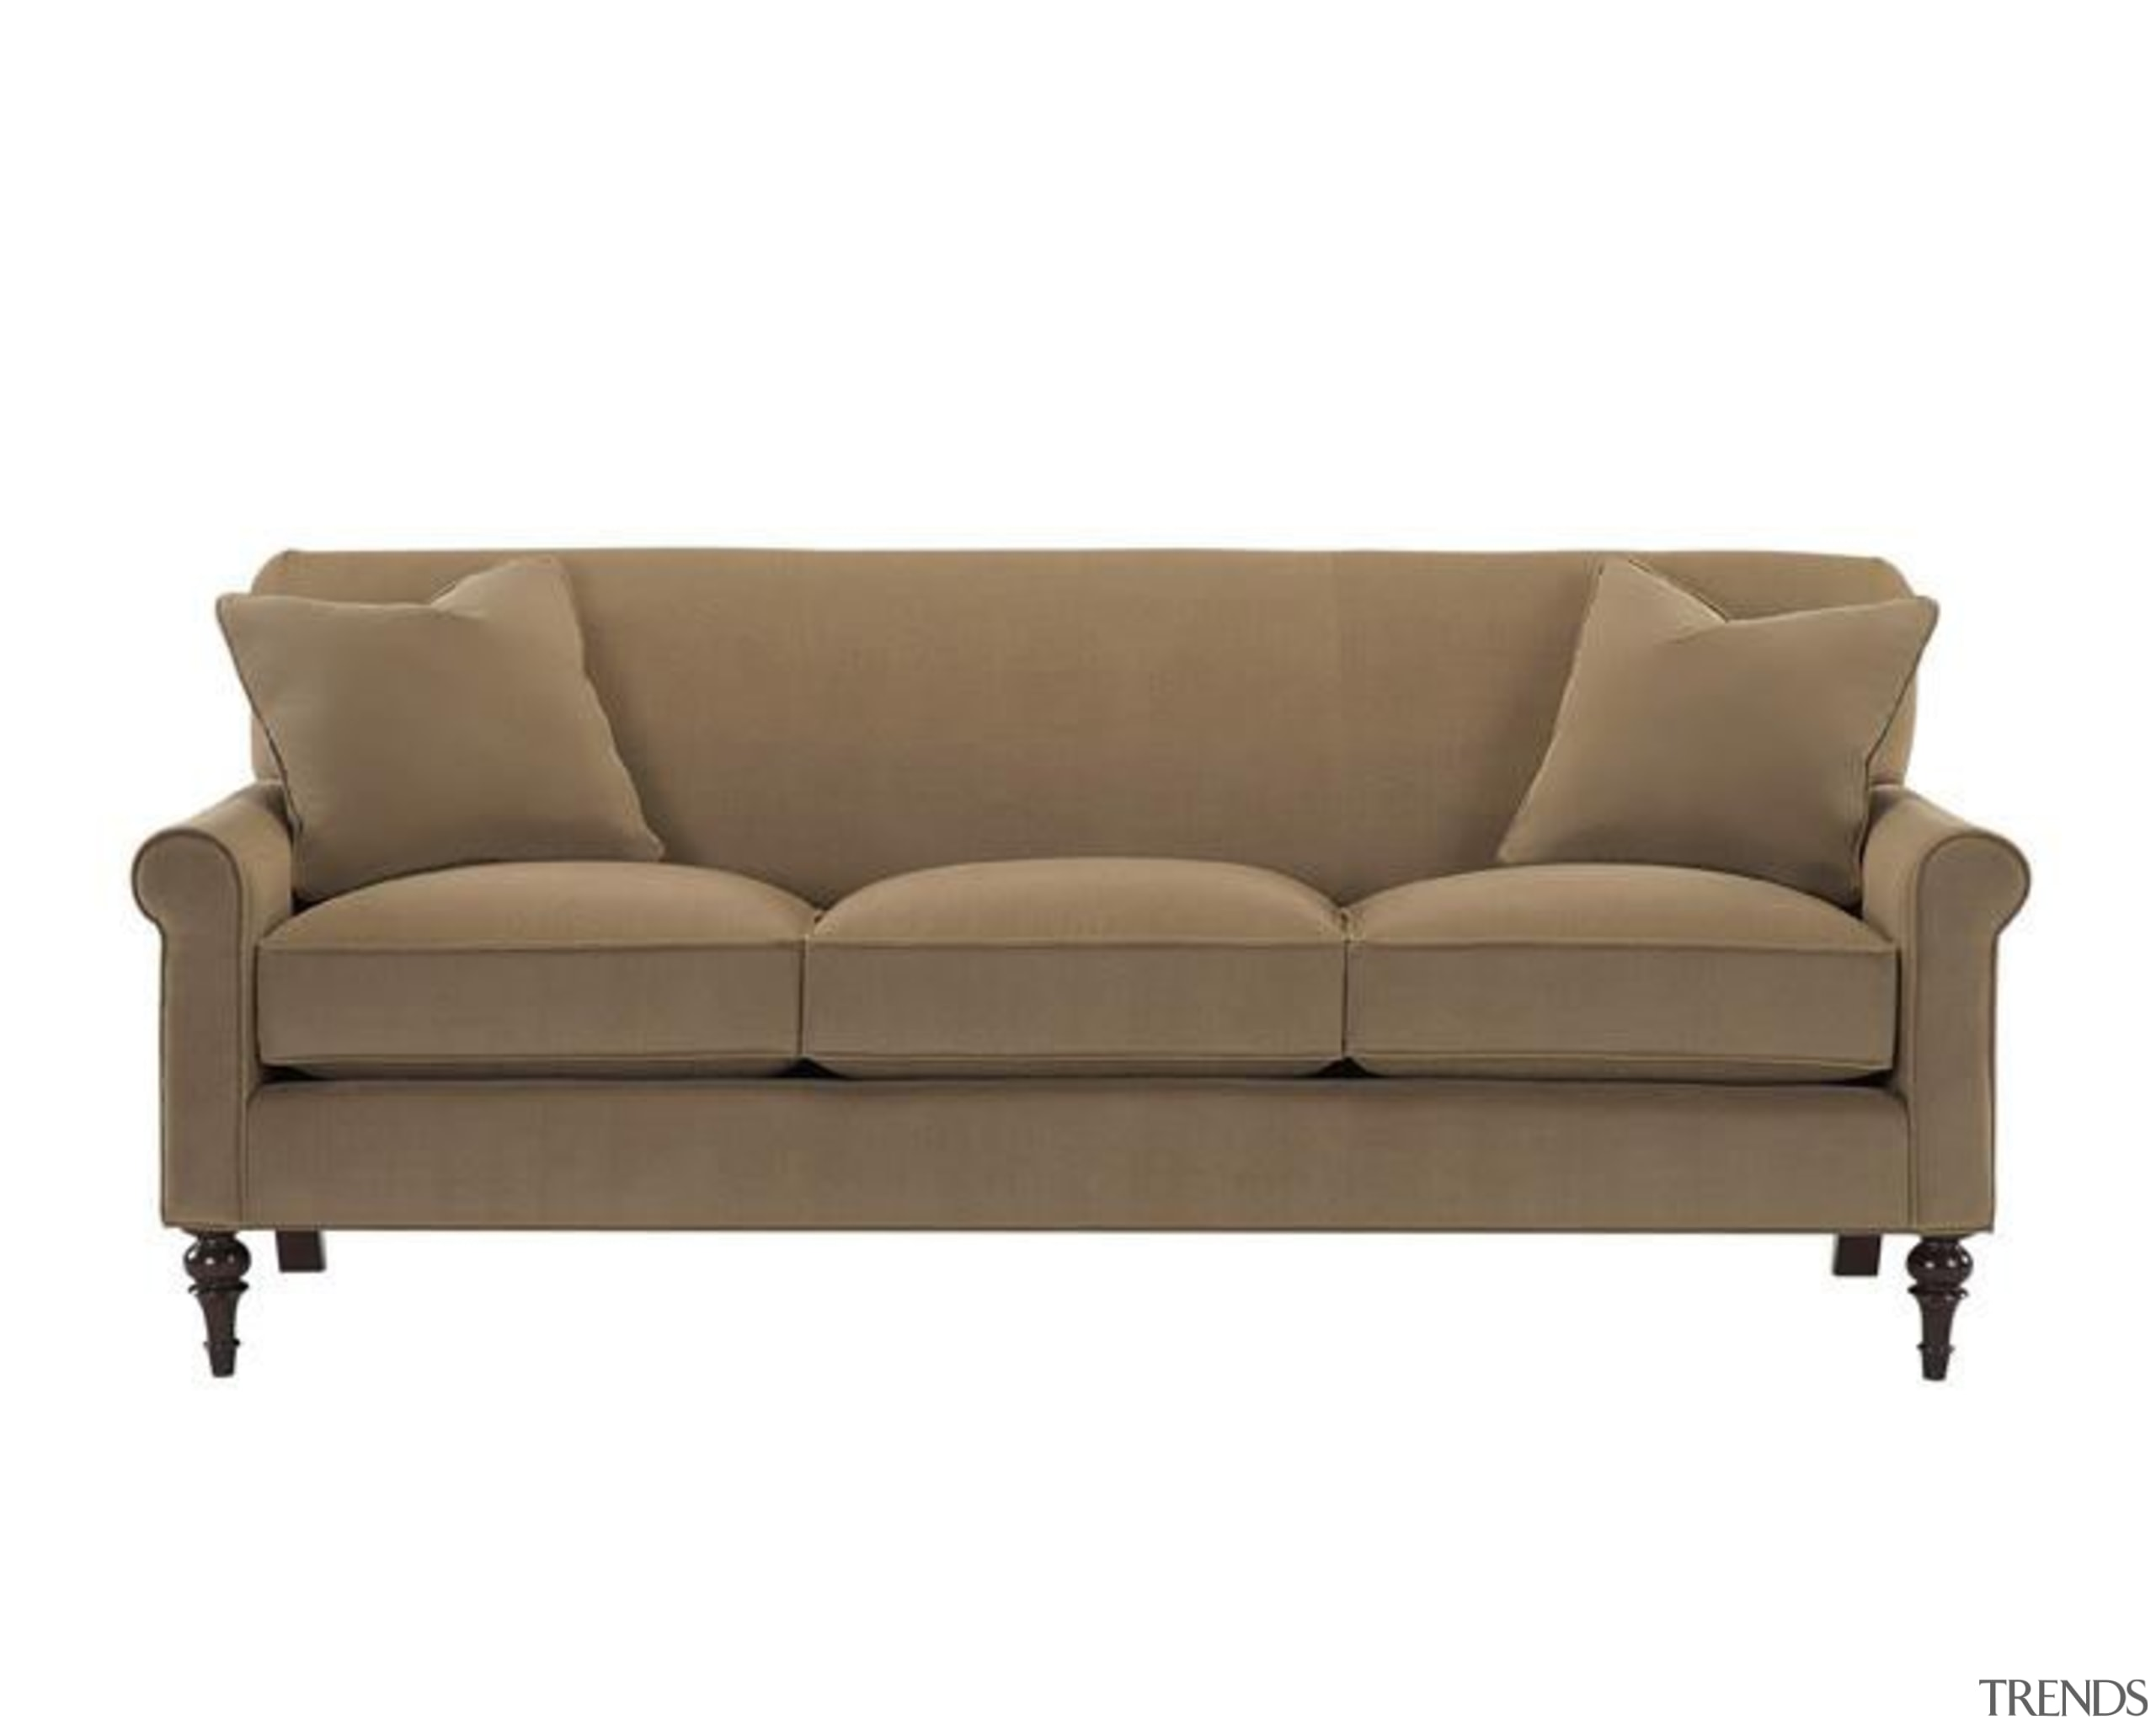 Designed to provide Baker style at unprecedented value, angle, couch, furniture, loveseat, outdoor furniture, outdoor sofa, product design, sofa bed, white, brown